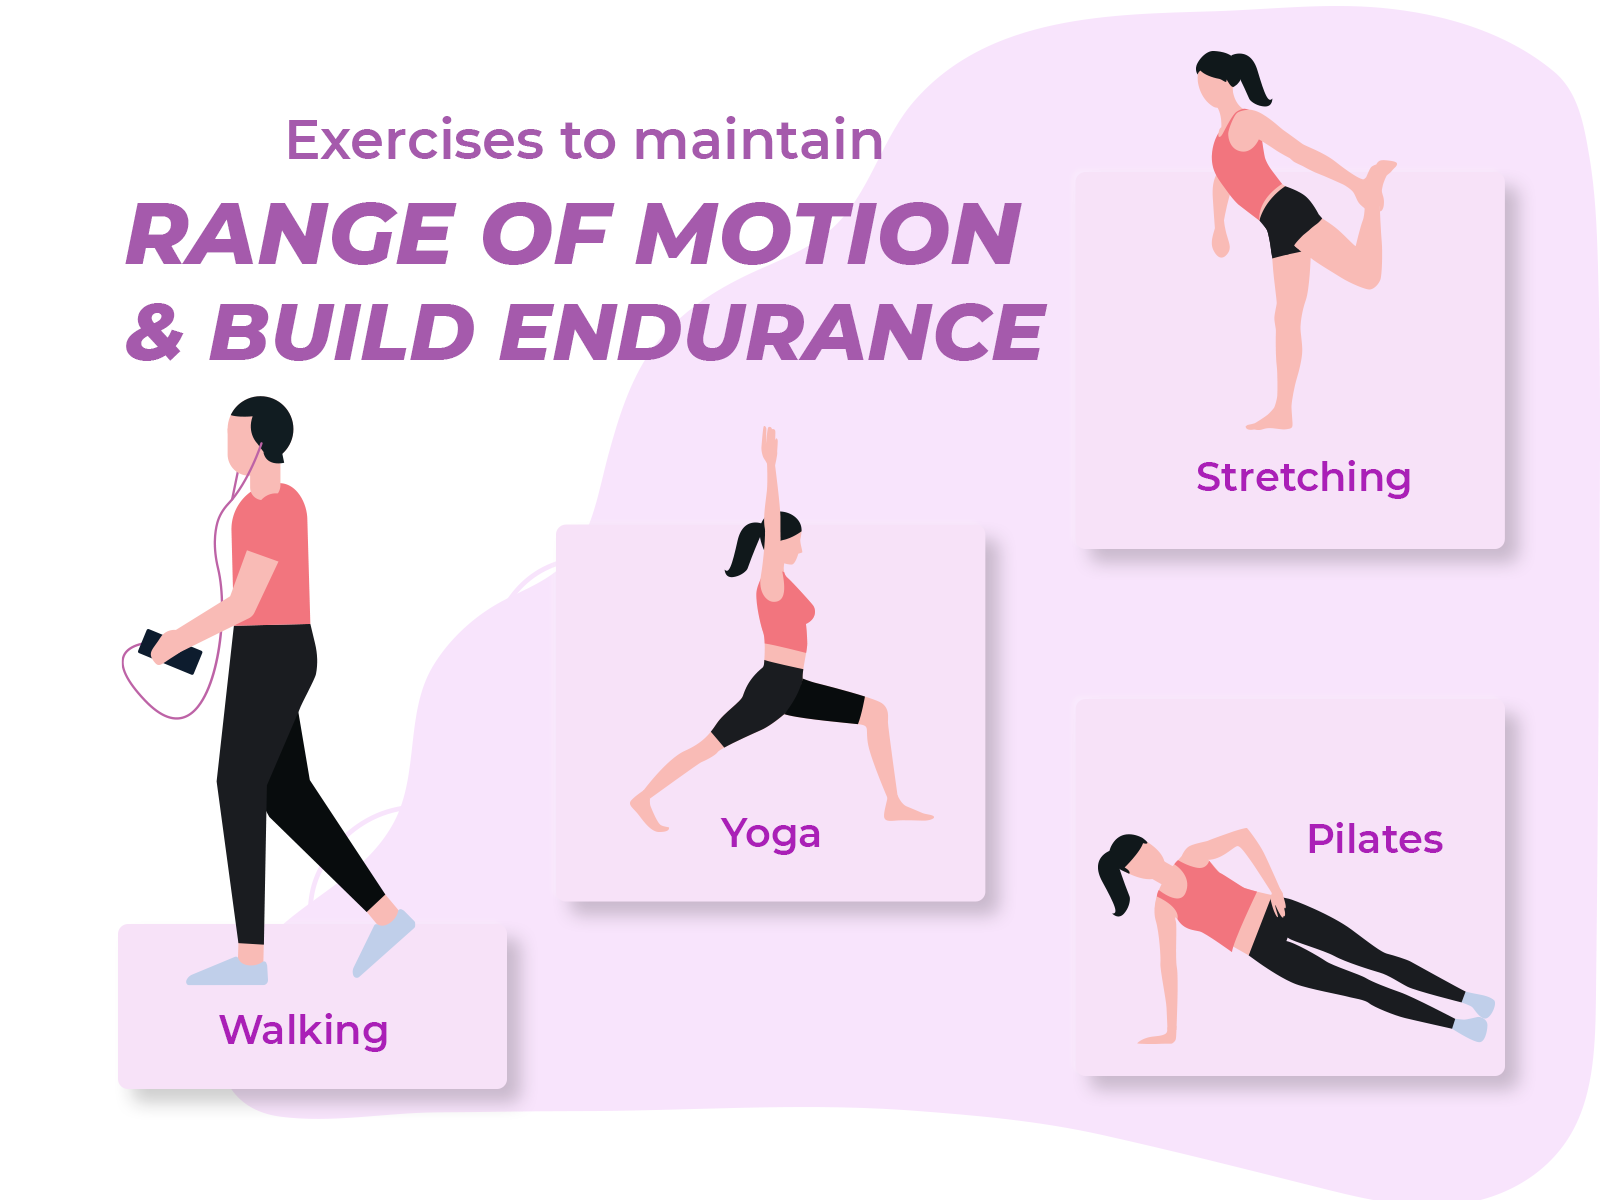 Showcasing different types of exercises useful in arthritis